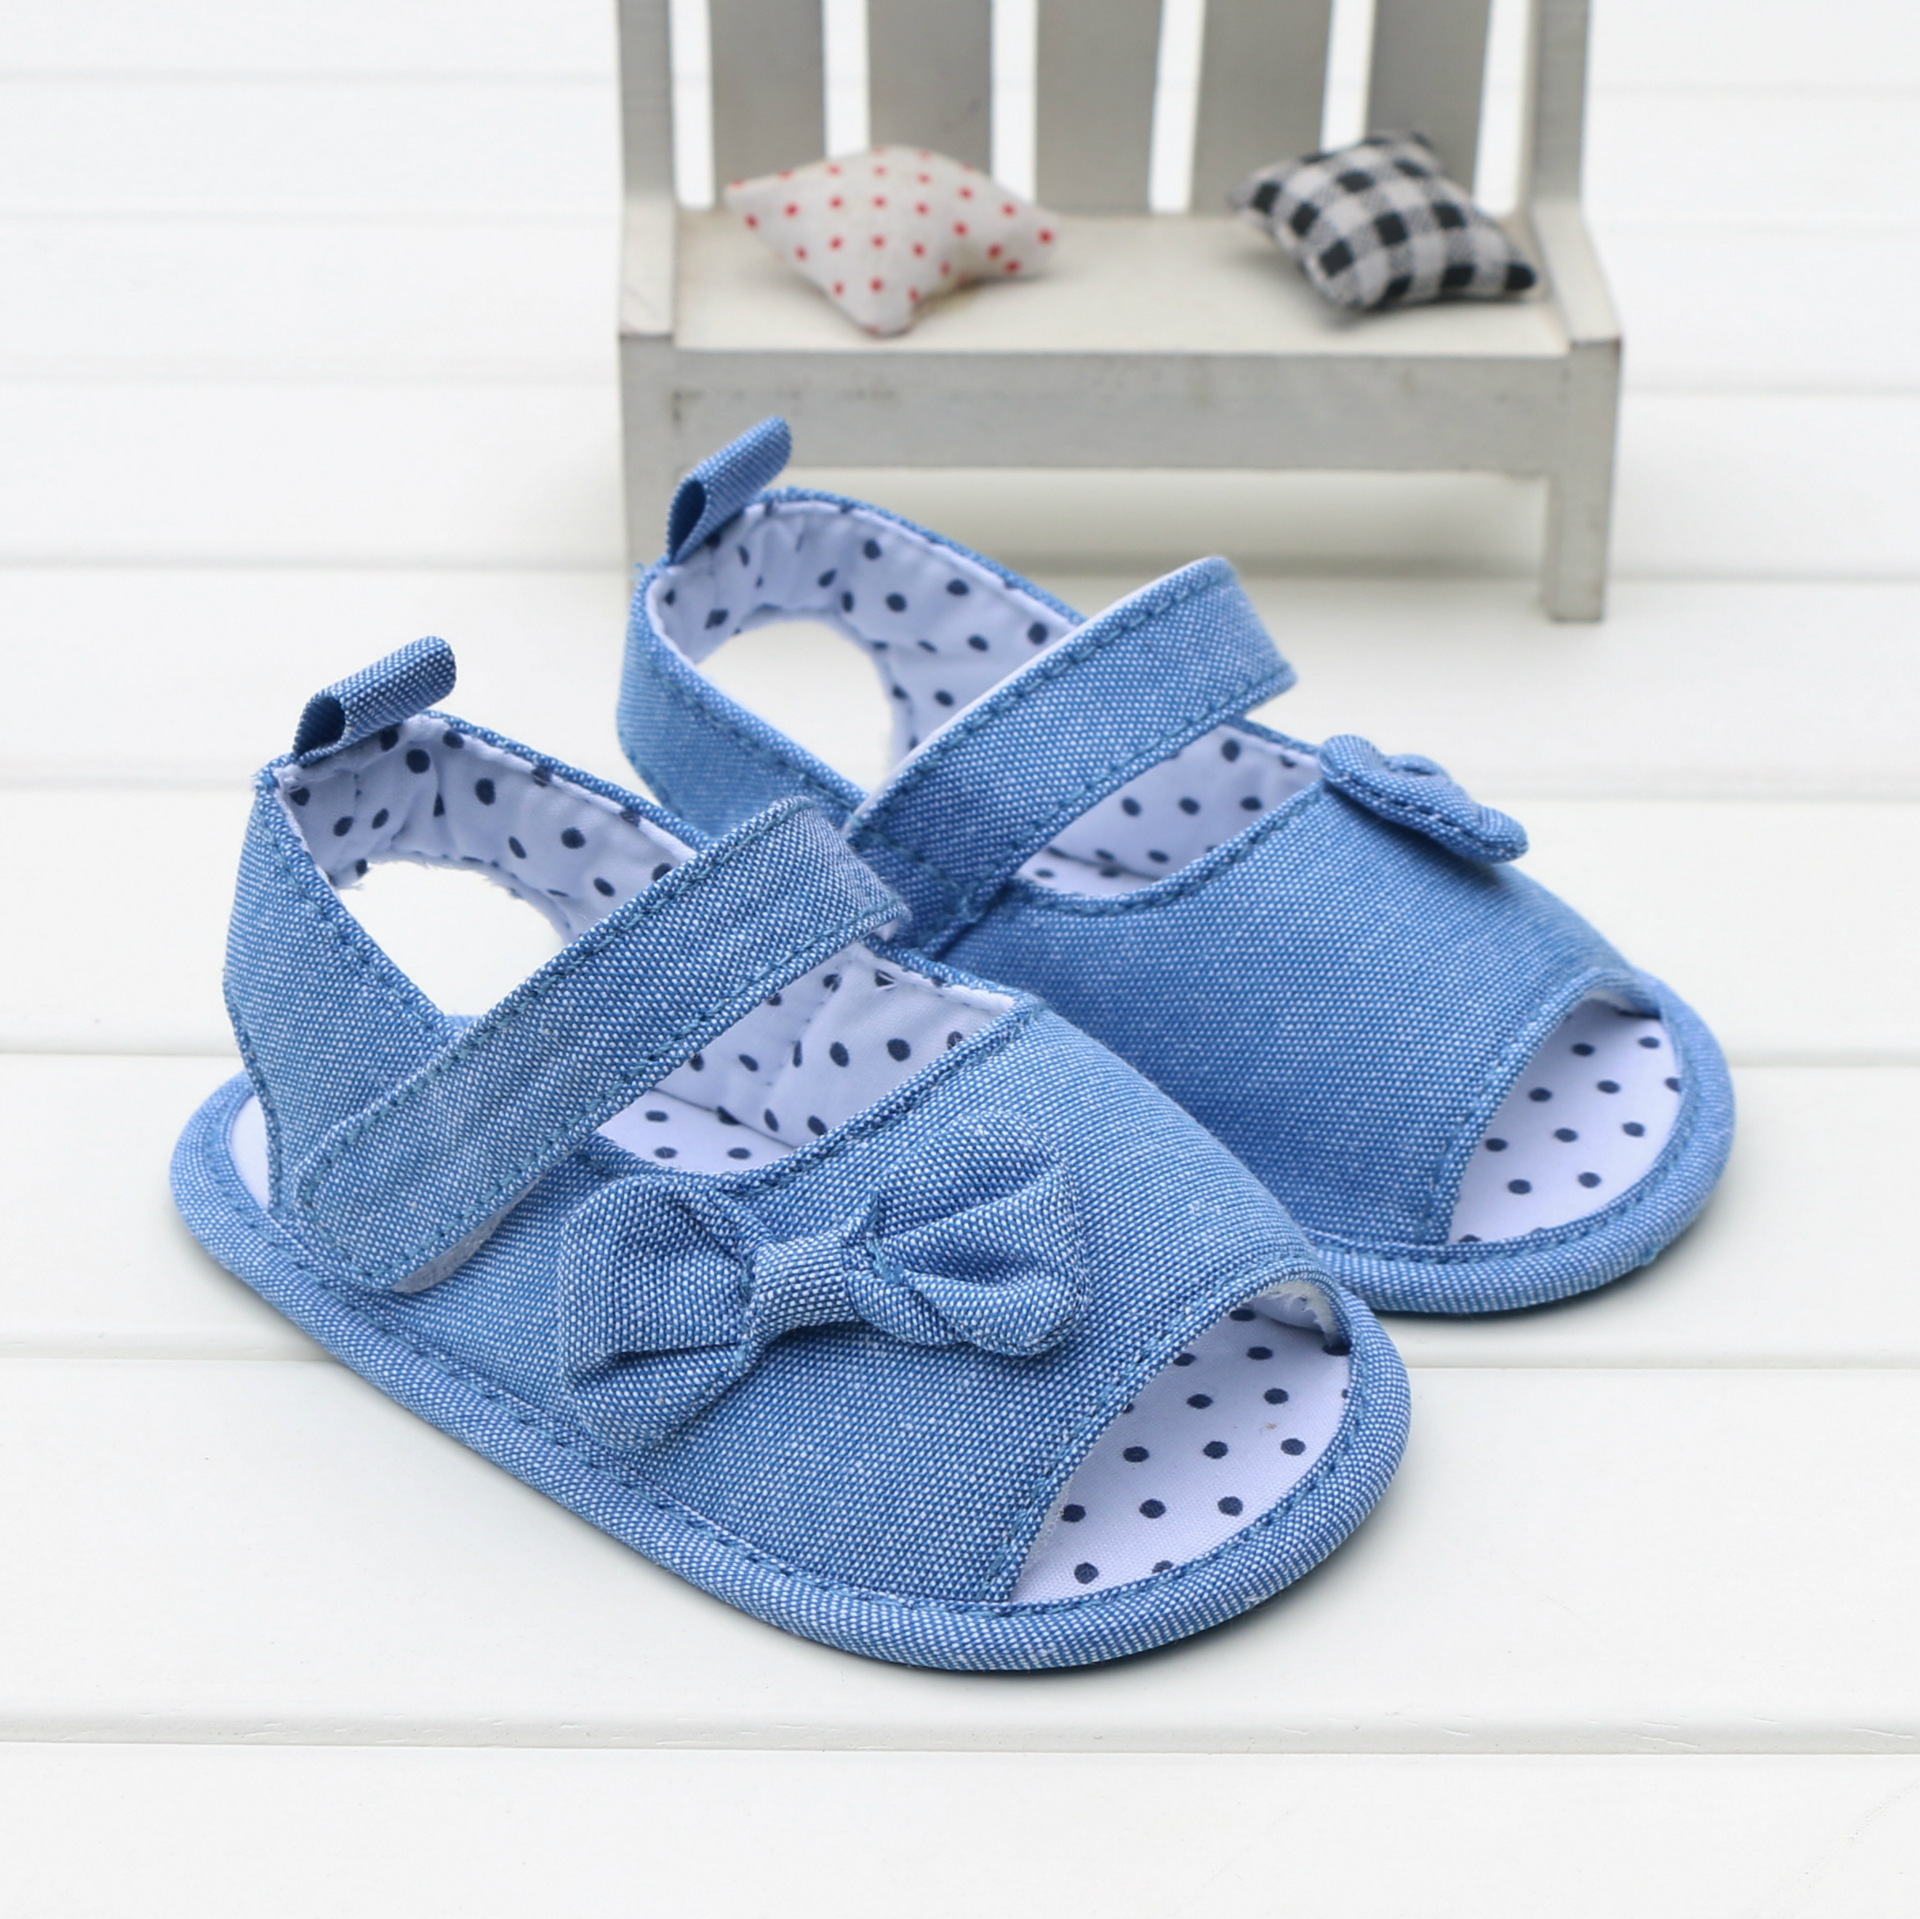 2018 New Baby Girls Summer Shoes Soft Bottom Non-slip Indoor Slippers Infant Toddler Shoes